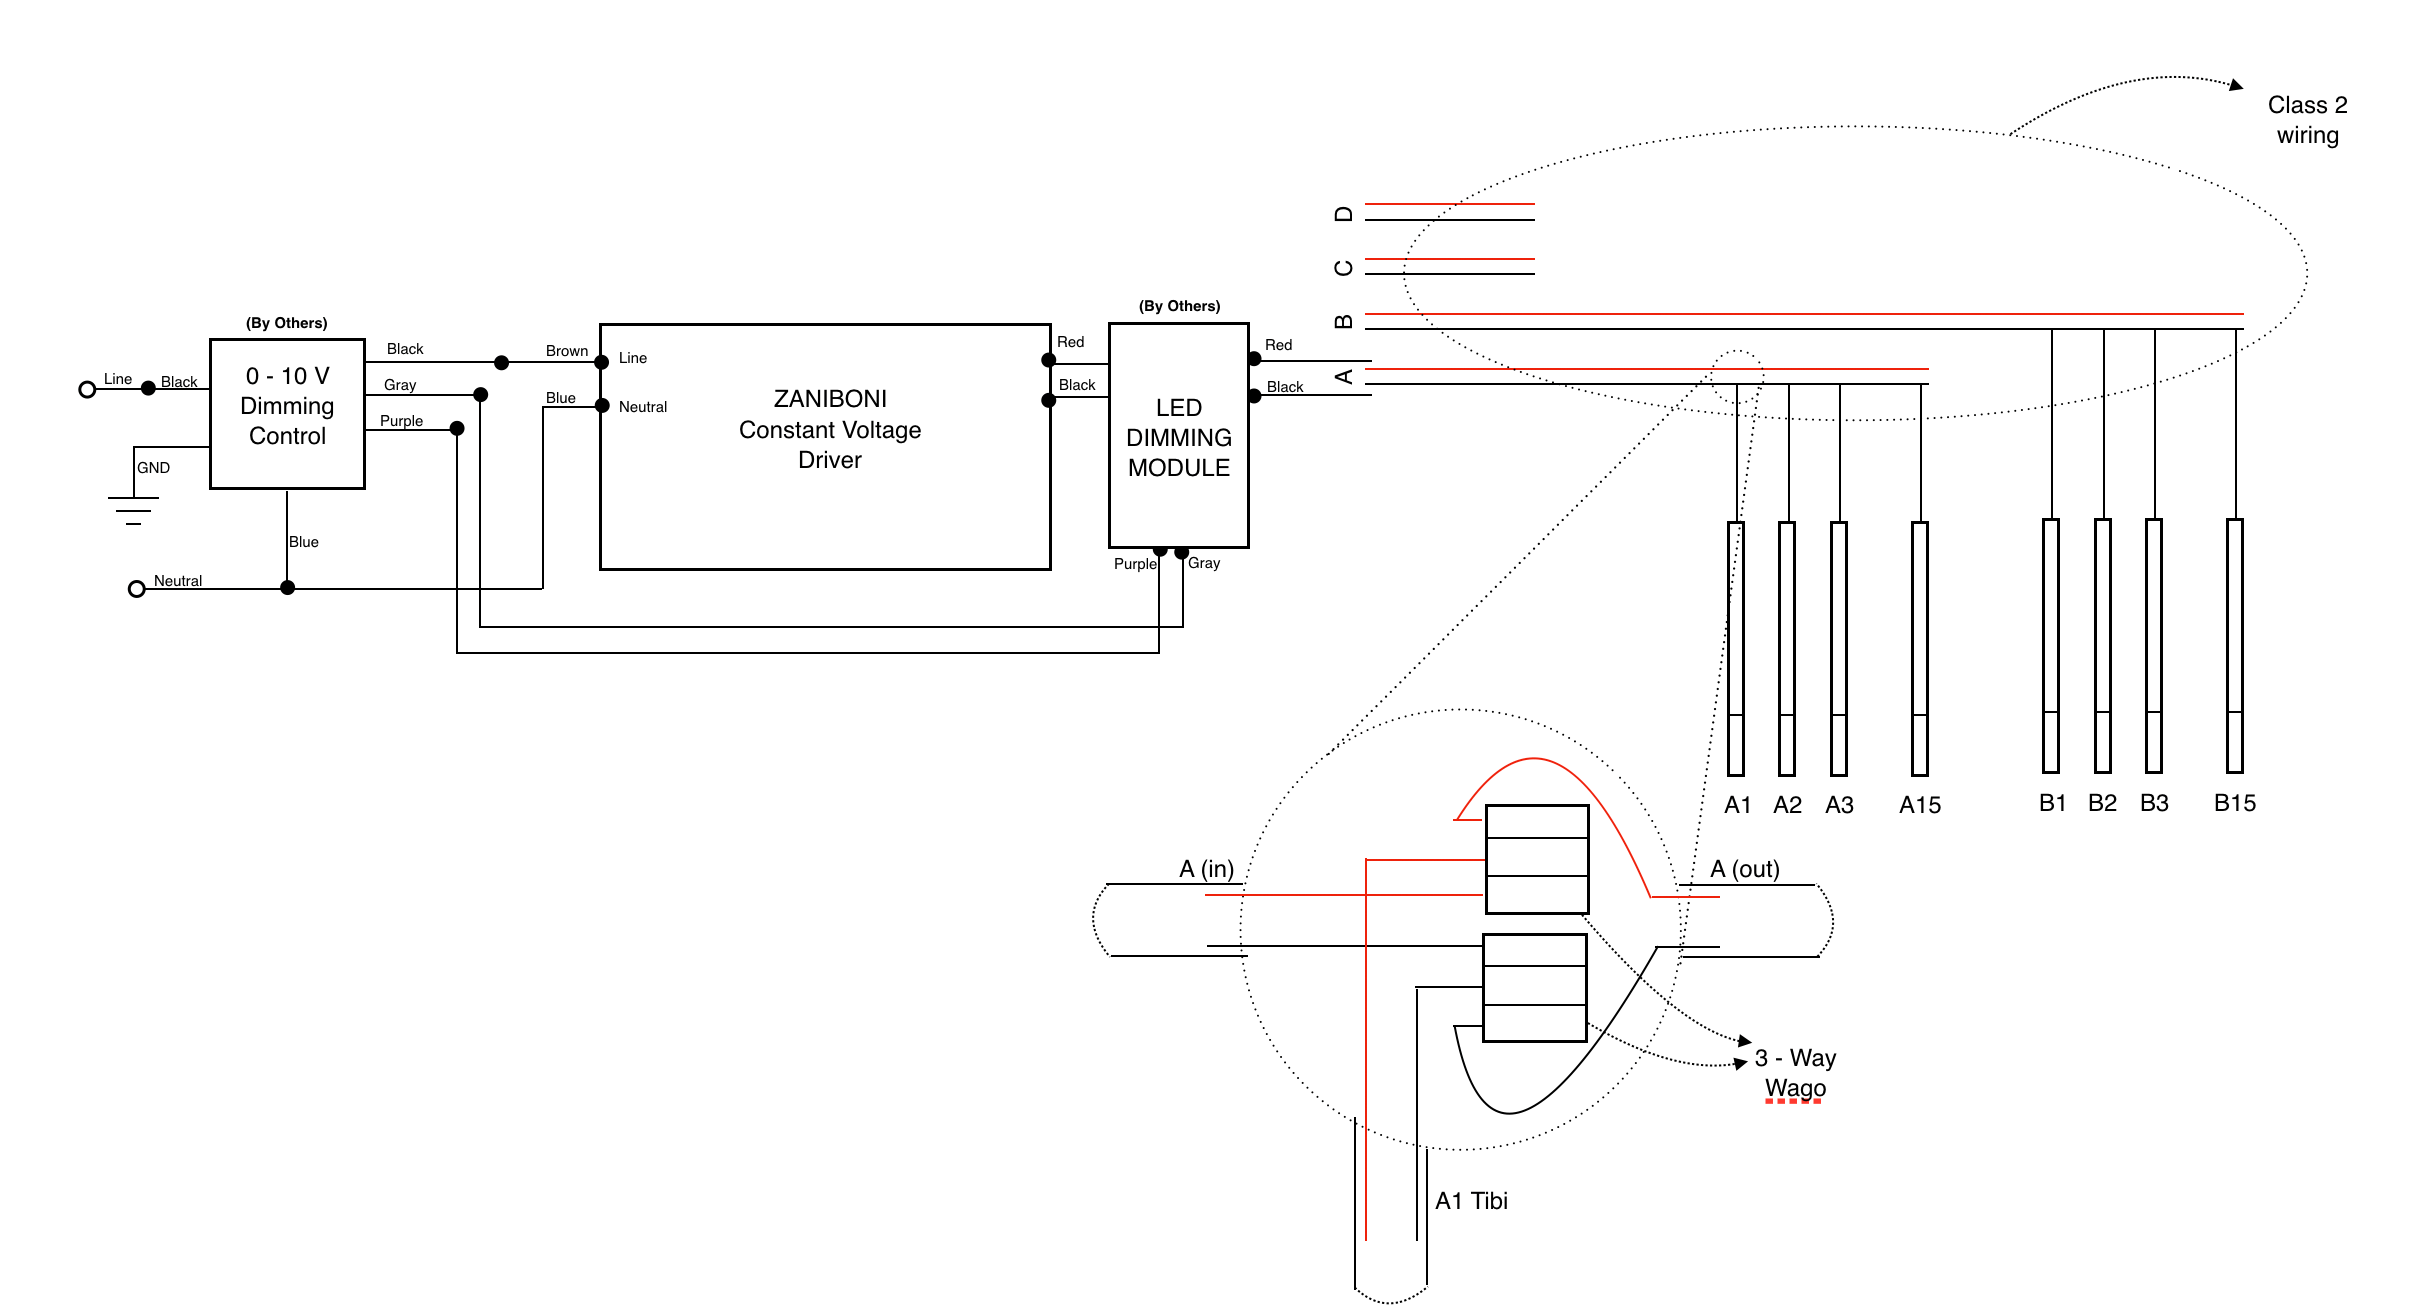 Wiring Diagrams Part 2